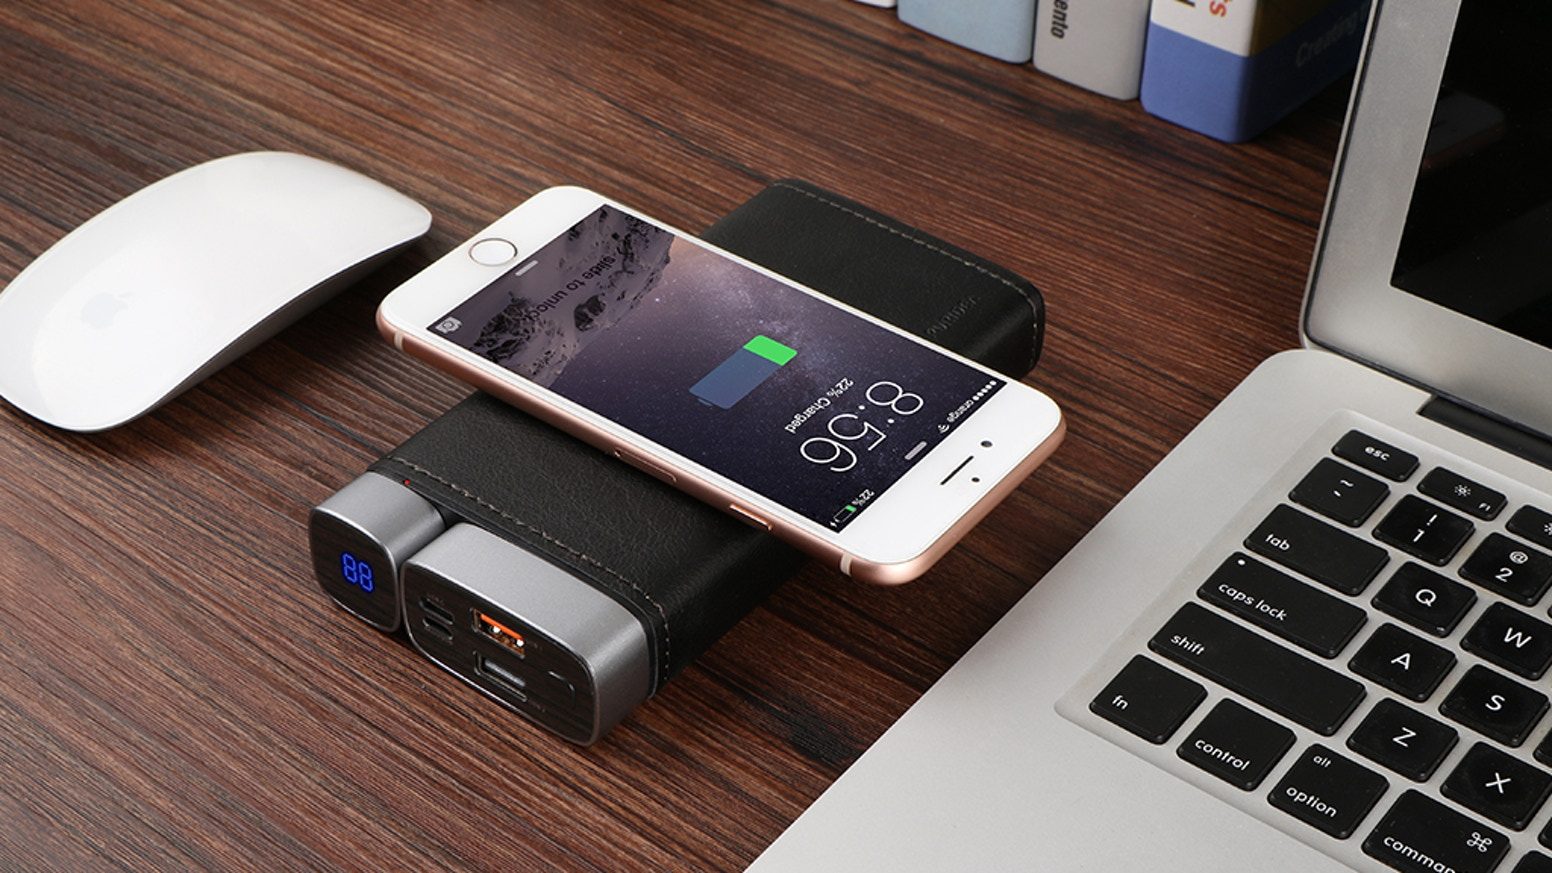 Puridea Pro X A Portable Wireless Power Bank By Kickstarter Adapter Micro Android To Type C Hippo Silver 15000mah For Business Trip Not Only Mobile